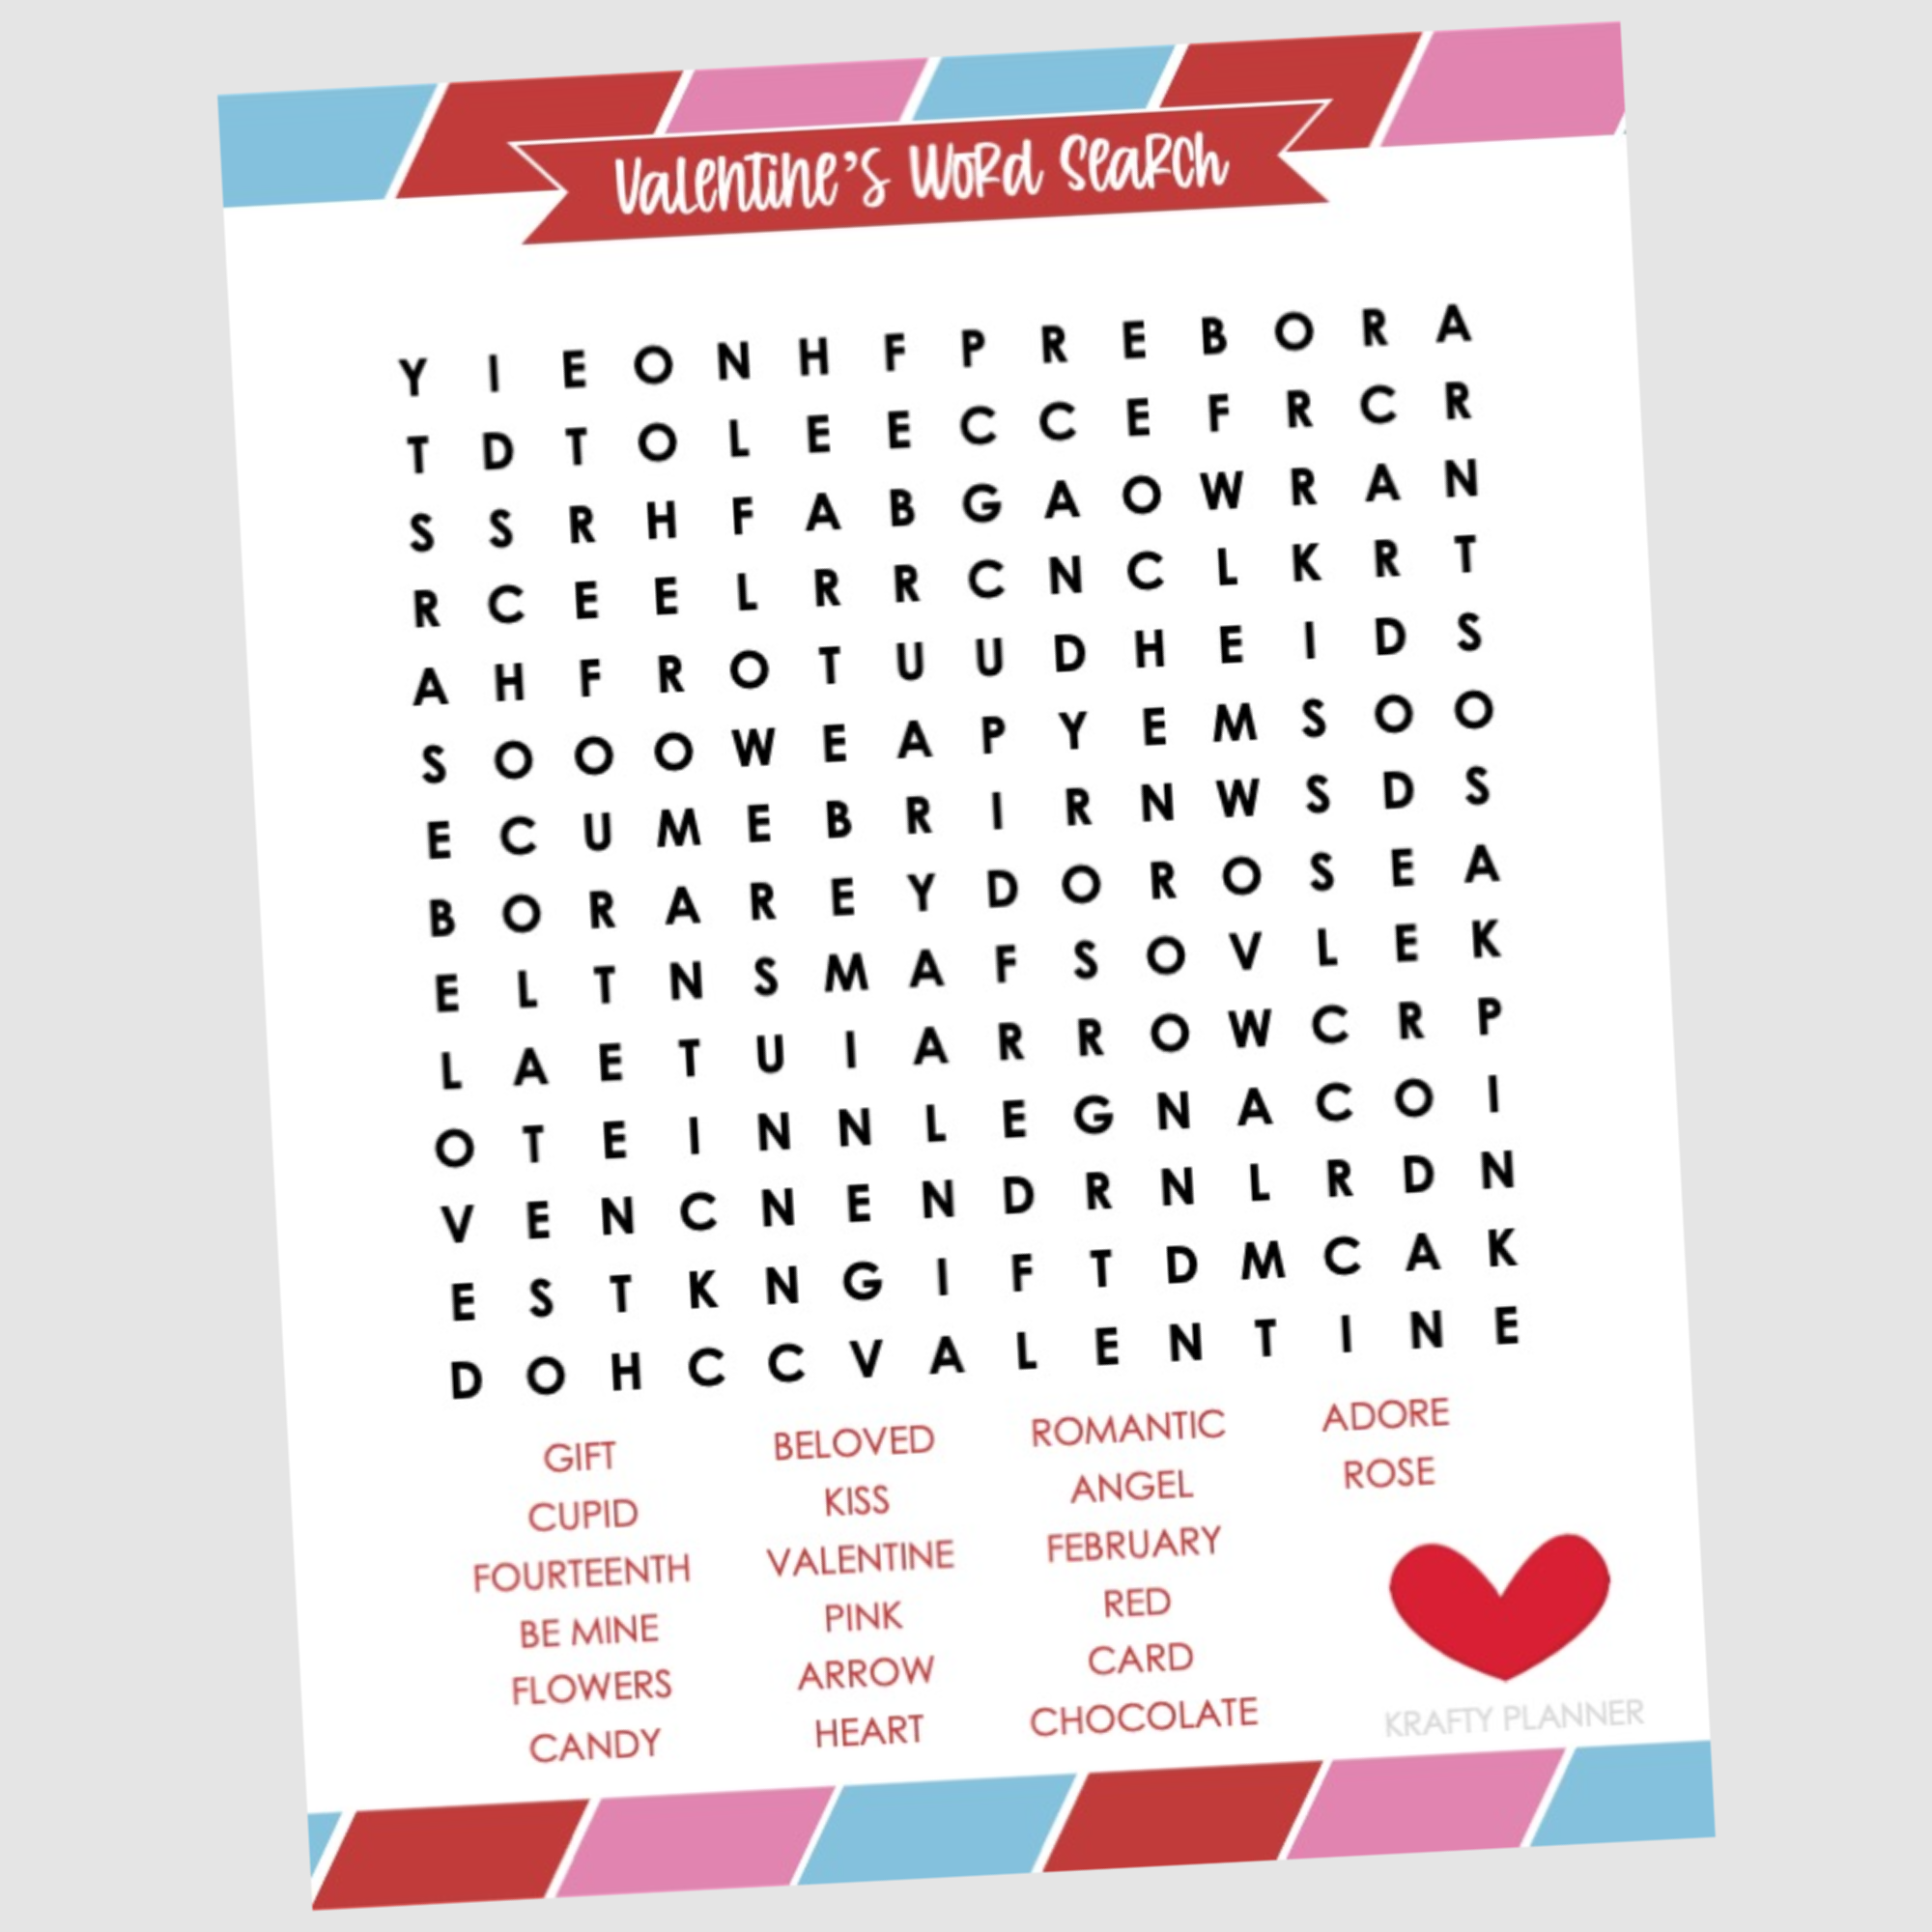 Valentine's Day Word Search.png